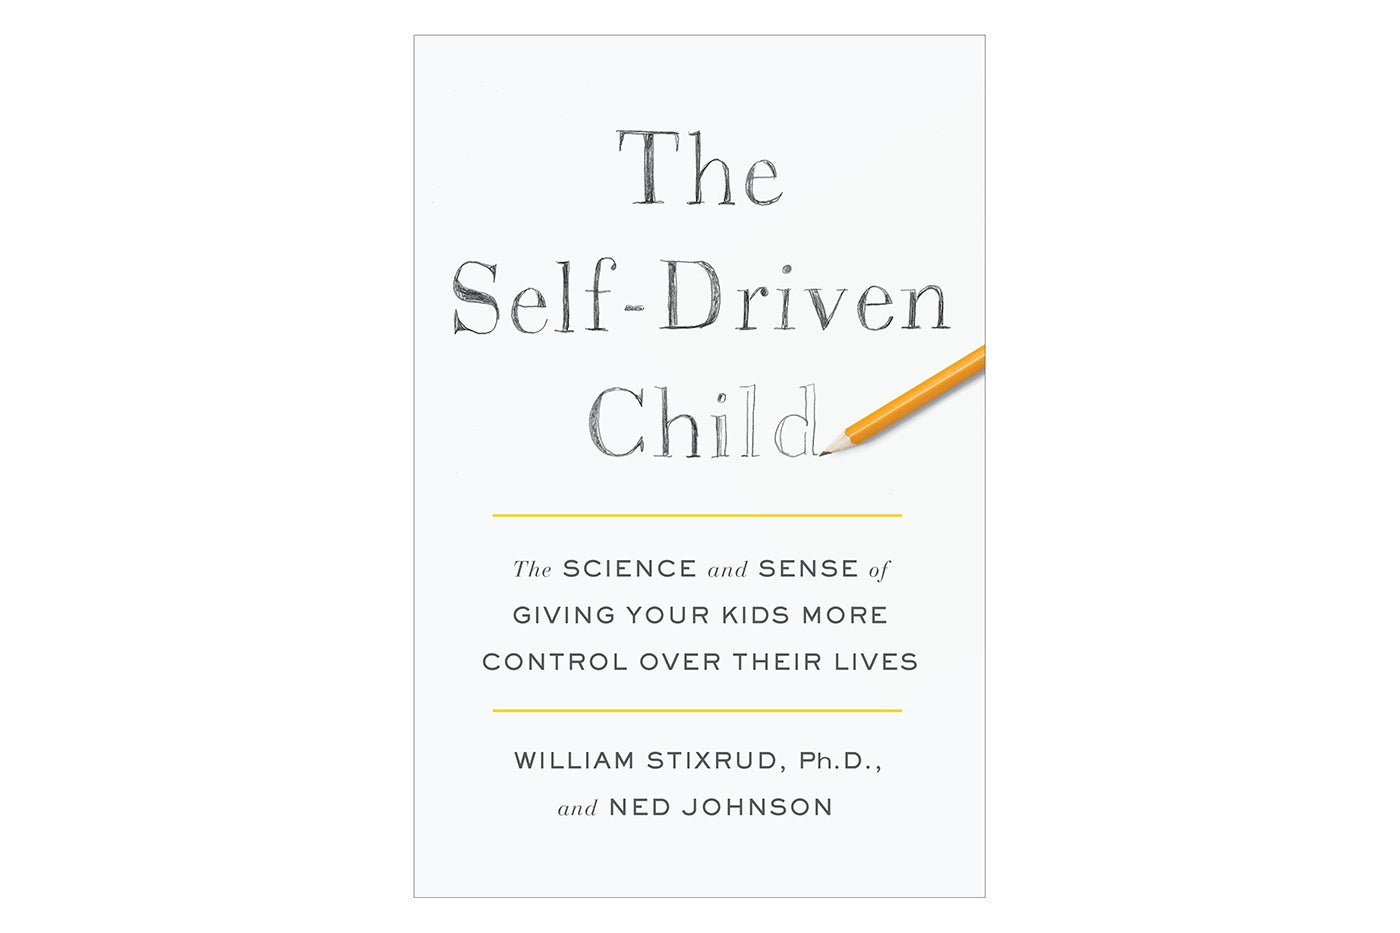 The Case For Self Driven Child Scientific American Post Back With Questions Obviously Since Your Wiring Has Been Altered